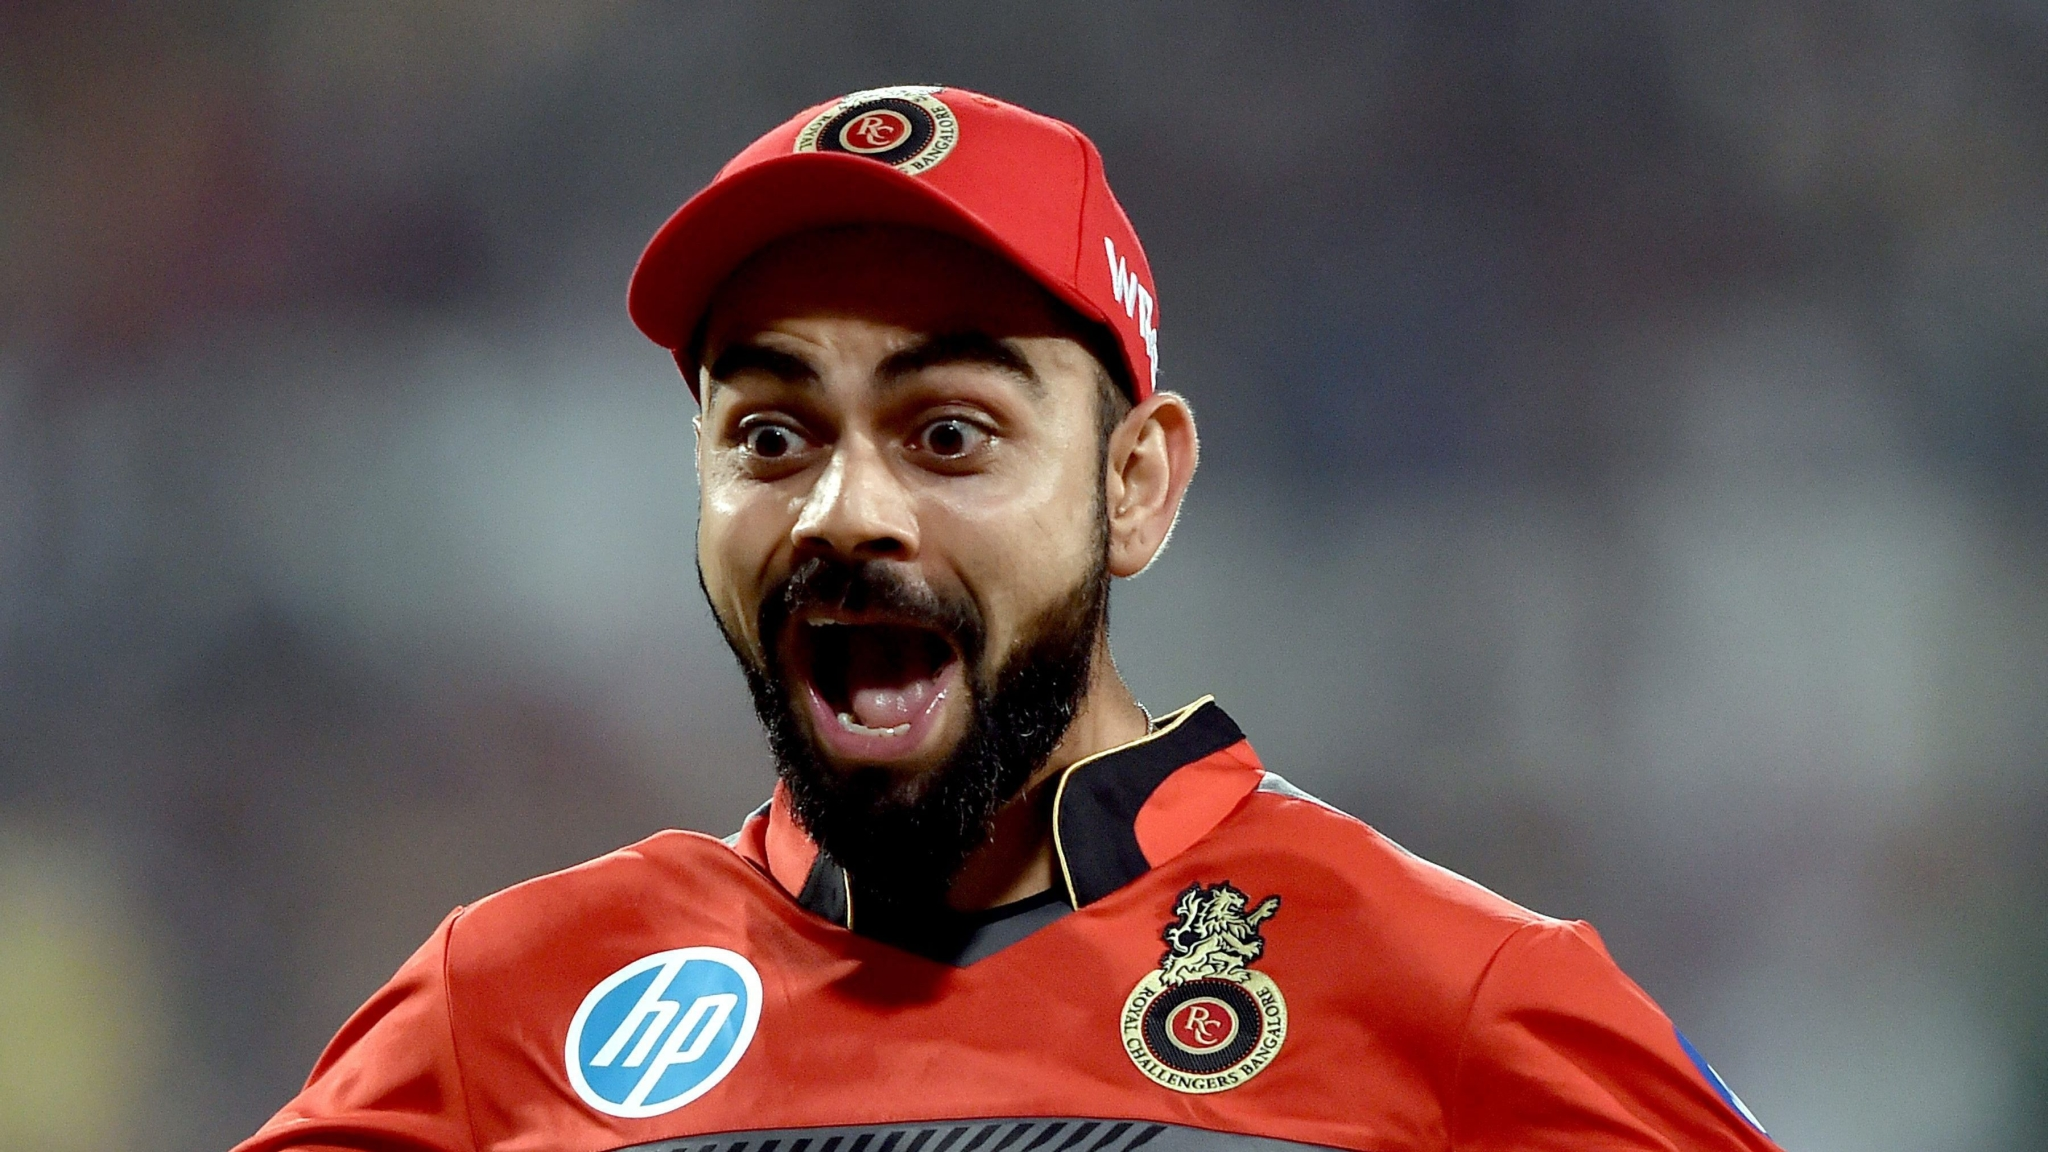 IPL: How Royal Challengers Bangalore Fared in the Past Seasons